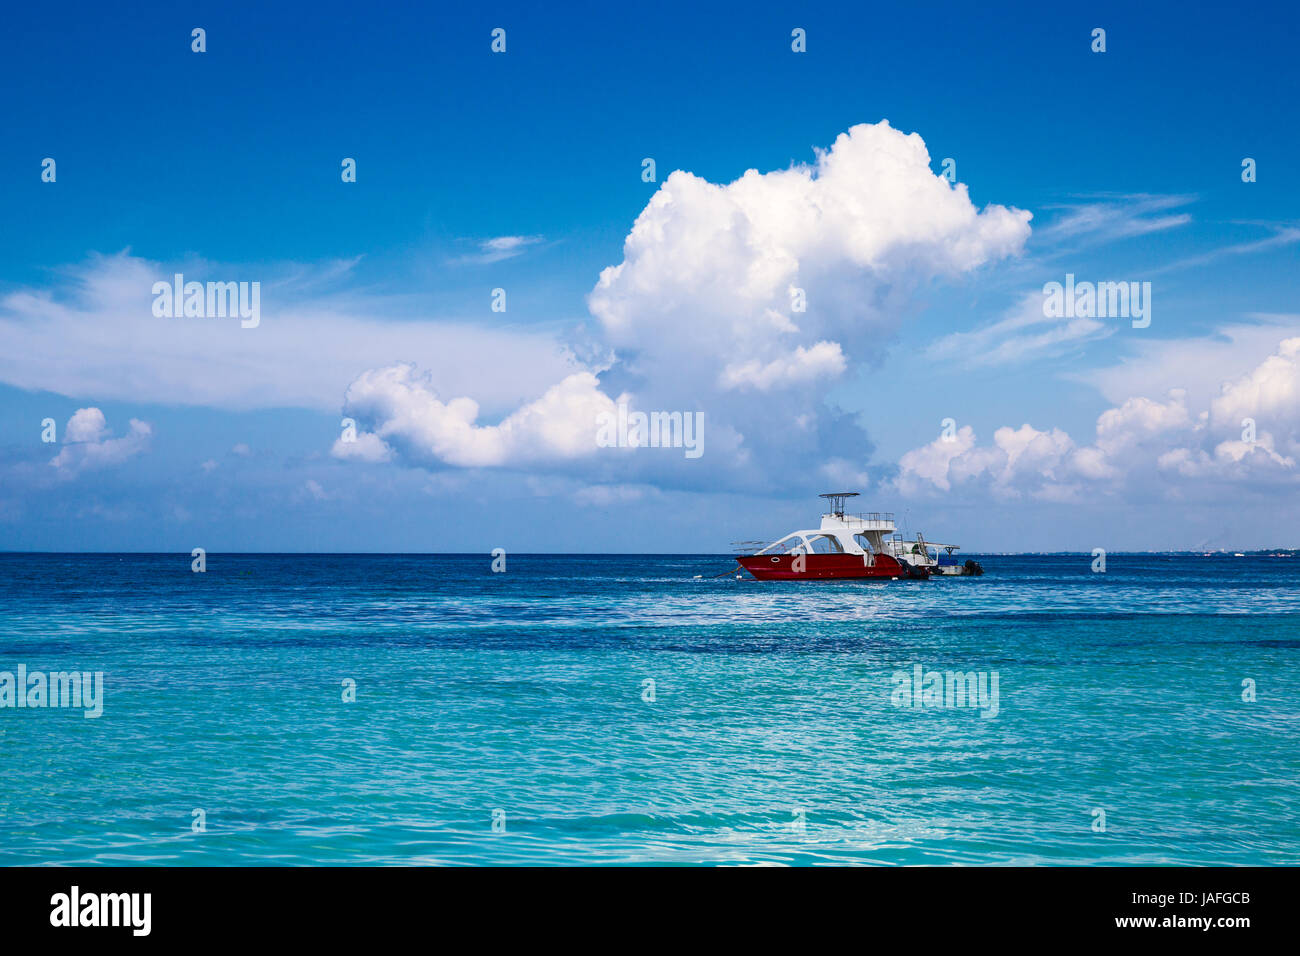 Boats in the Caribbean. A saturated blue sky, clouds and the sea. Dominican Republic - Stock Image